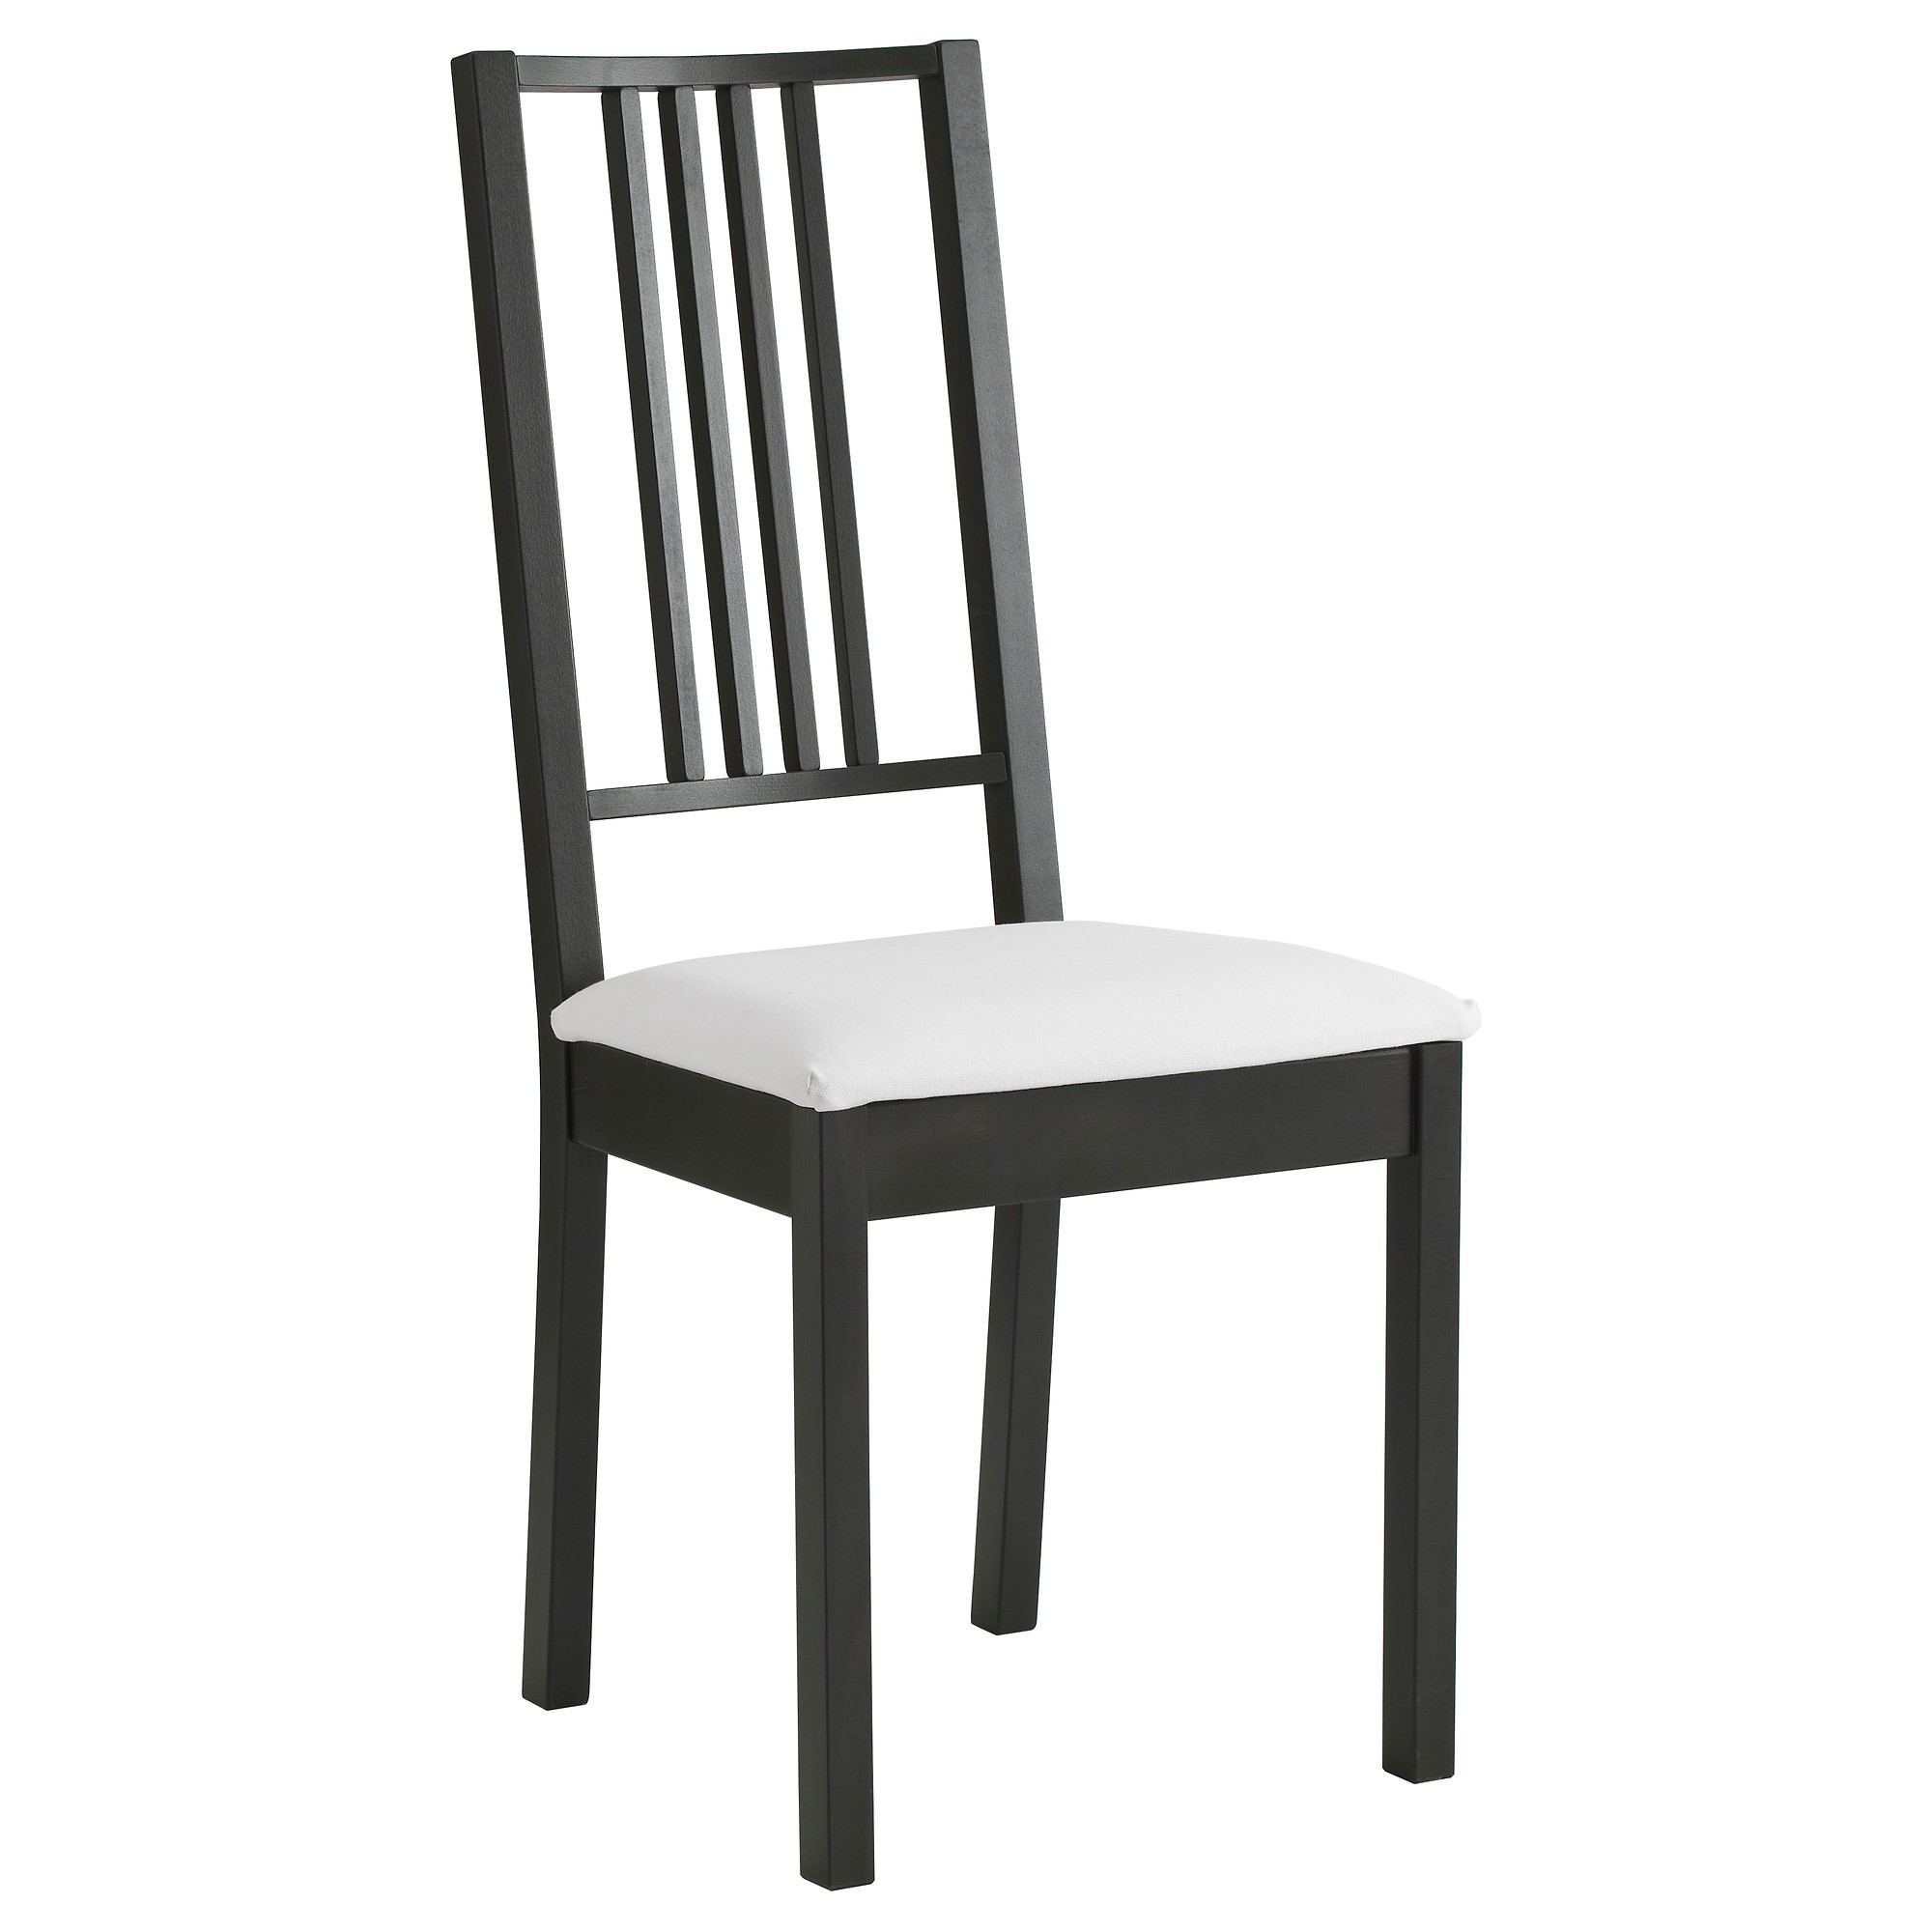 Chaise ikea noir et blanc chaise id es de d coration for Chaise noir blanc